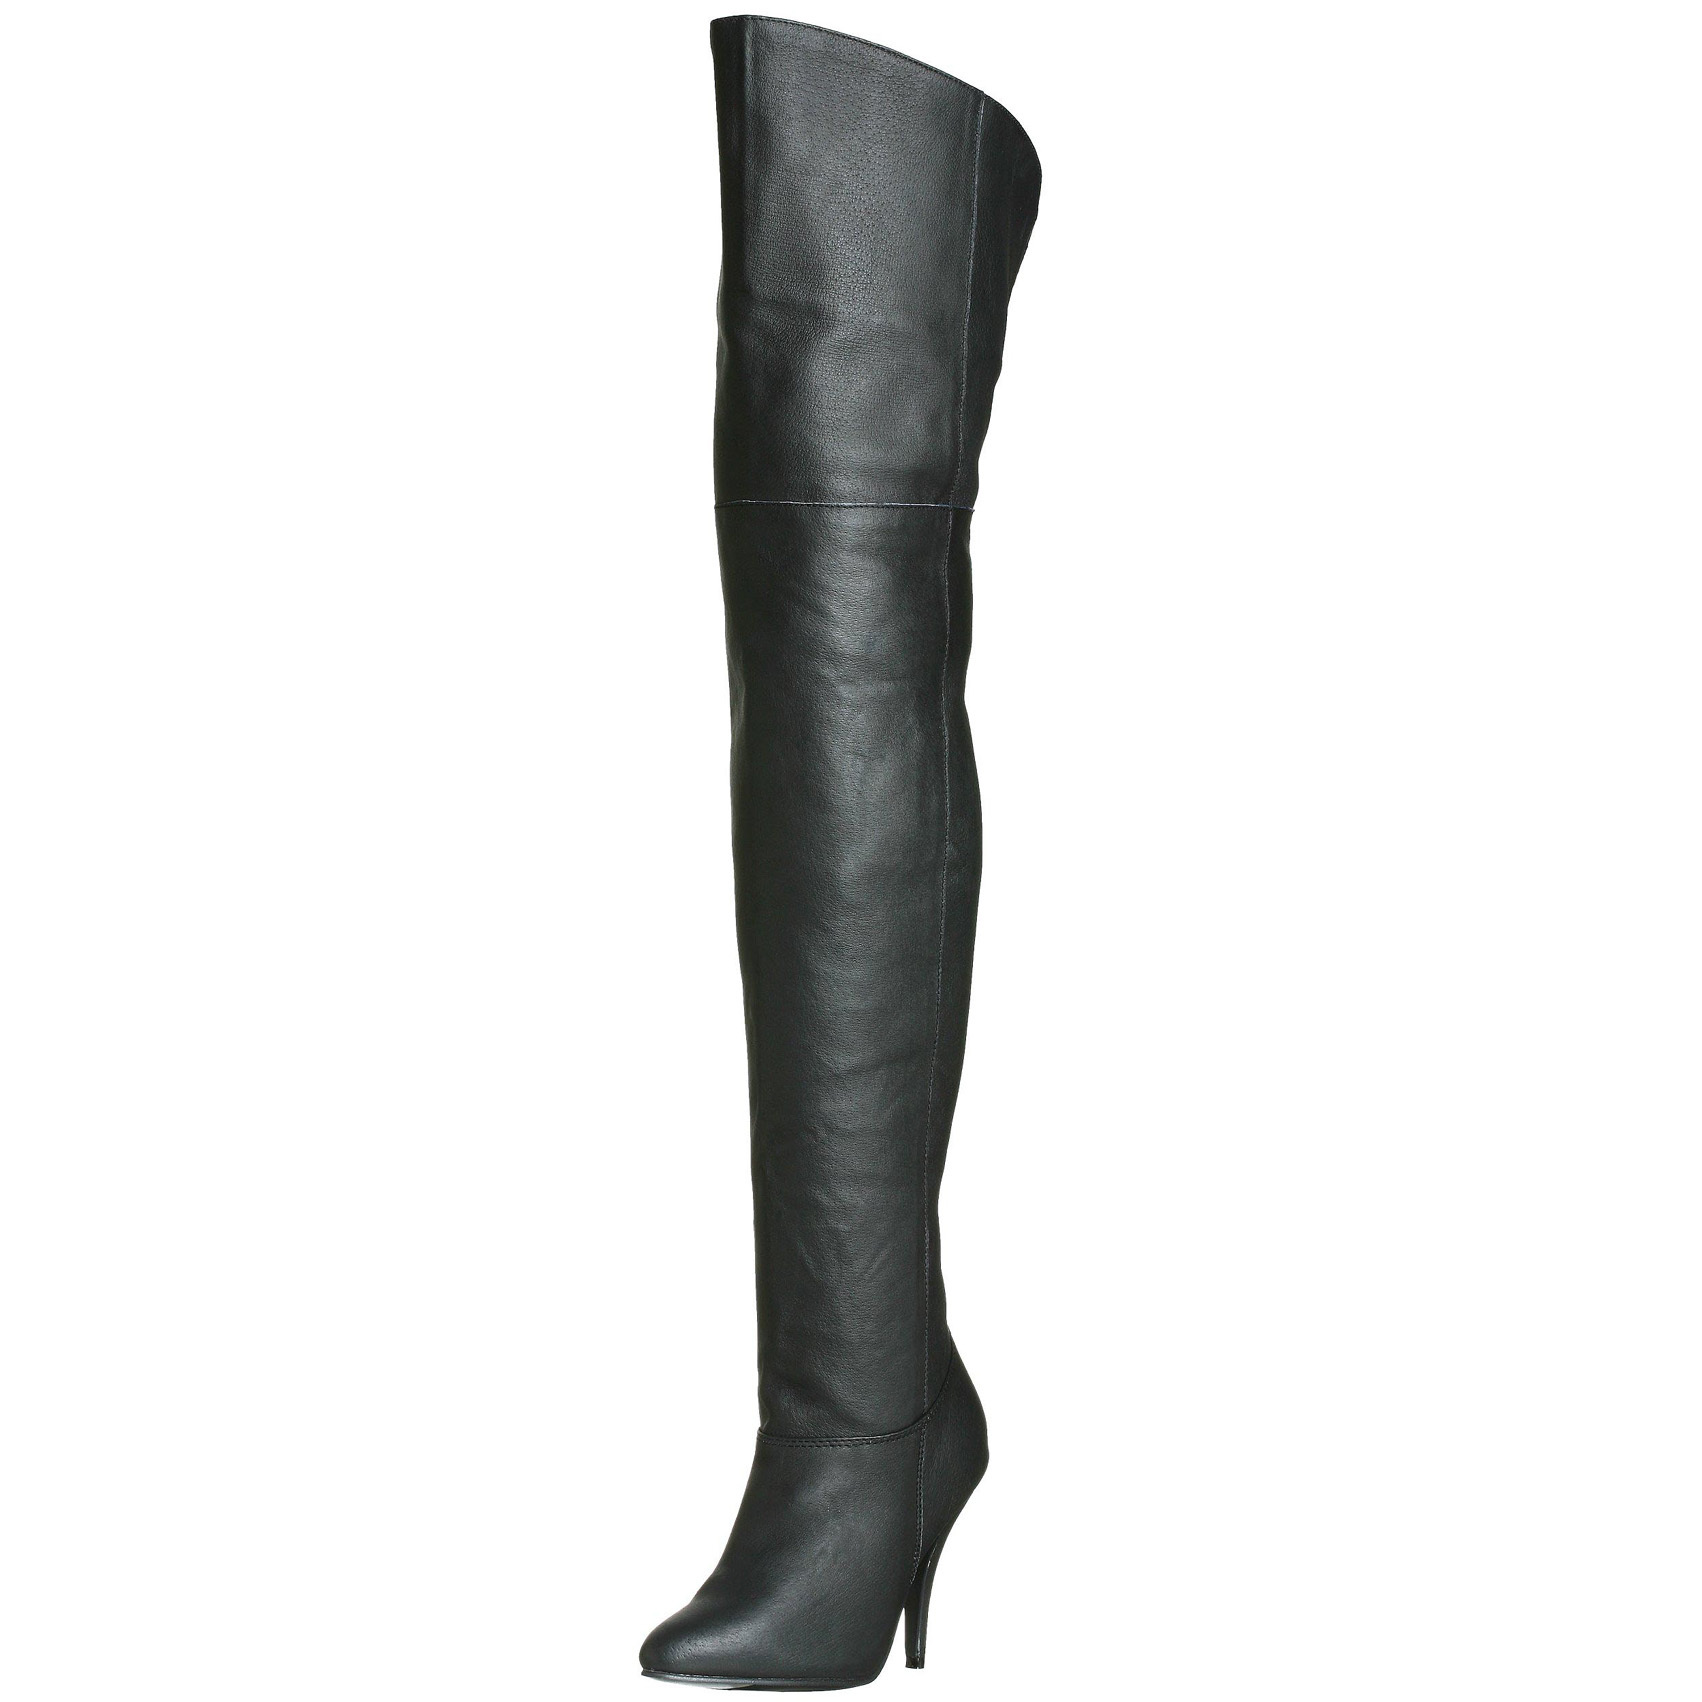 4 inch high heel leather boots black thigh high boots pull